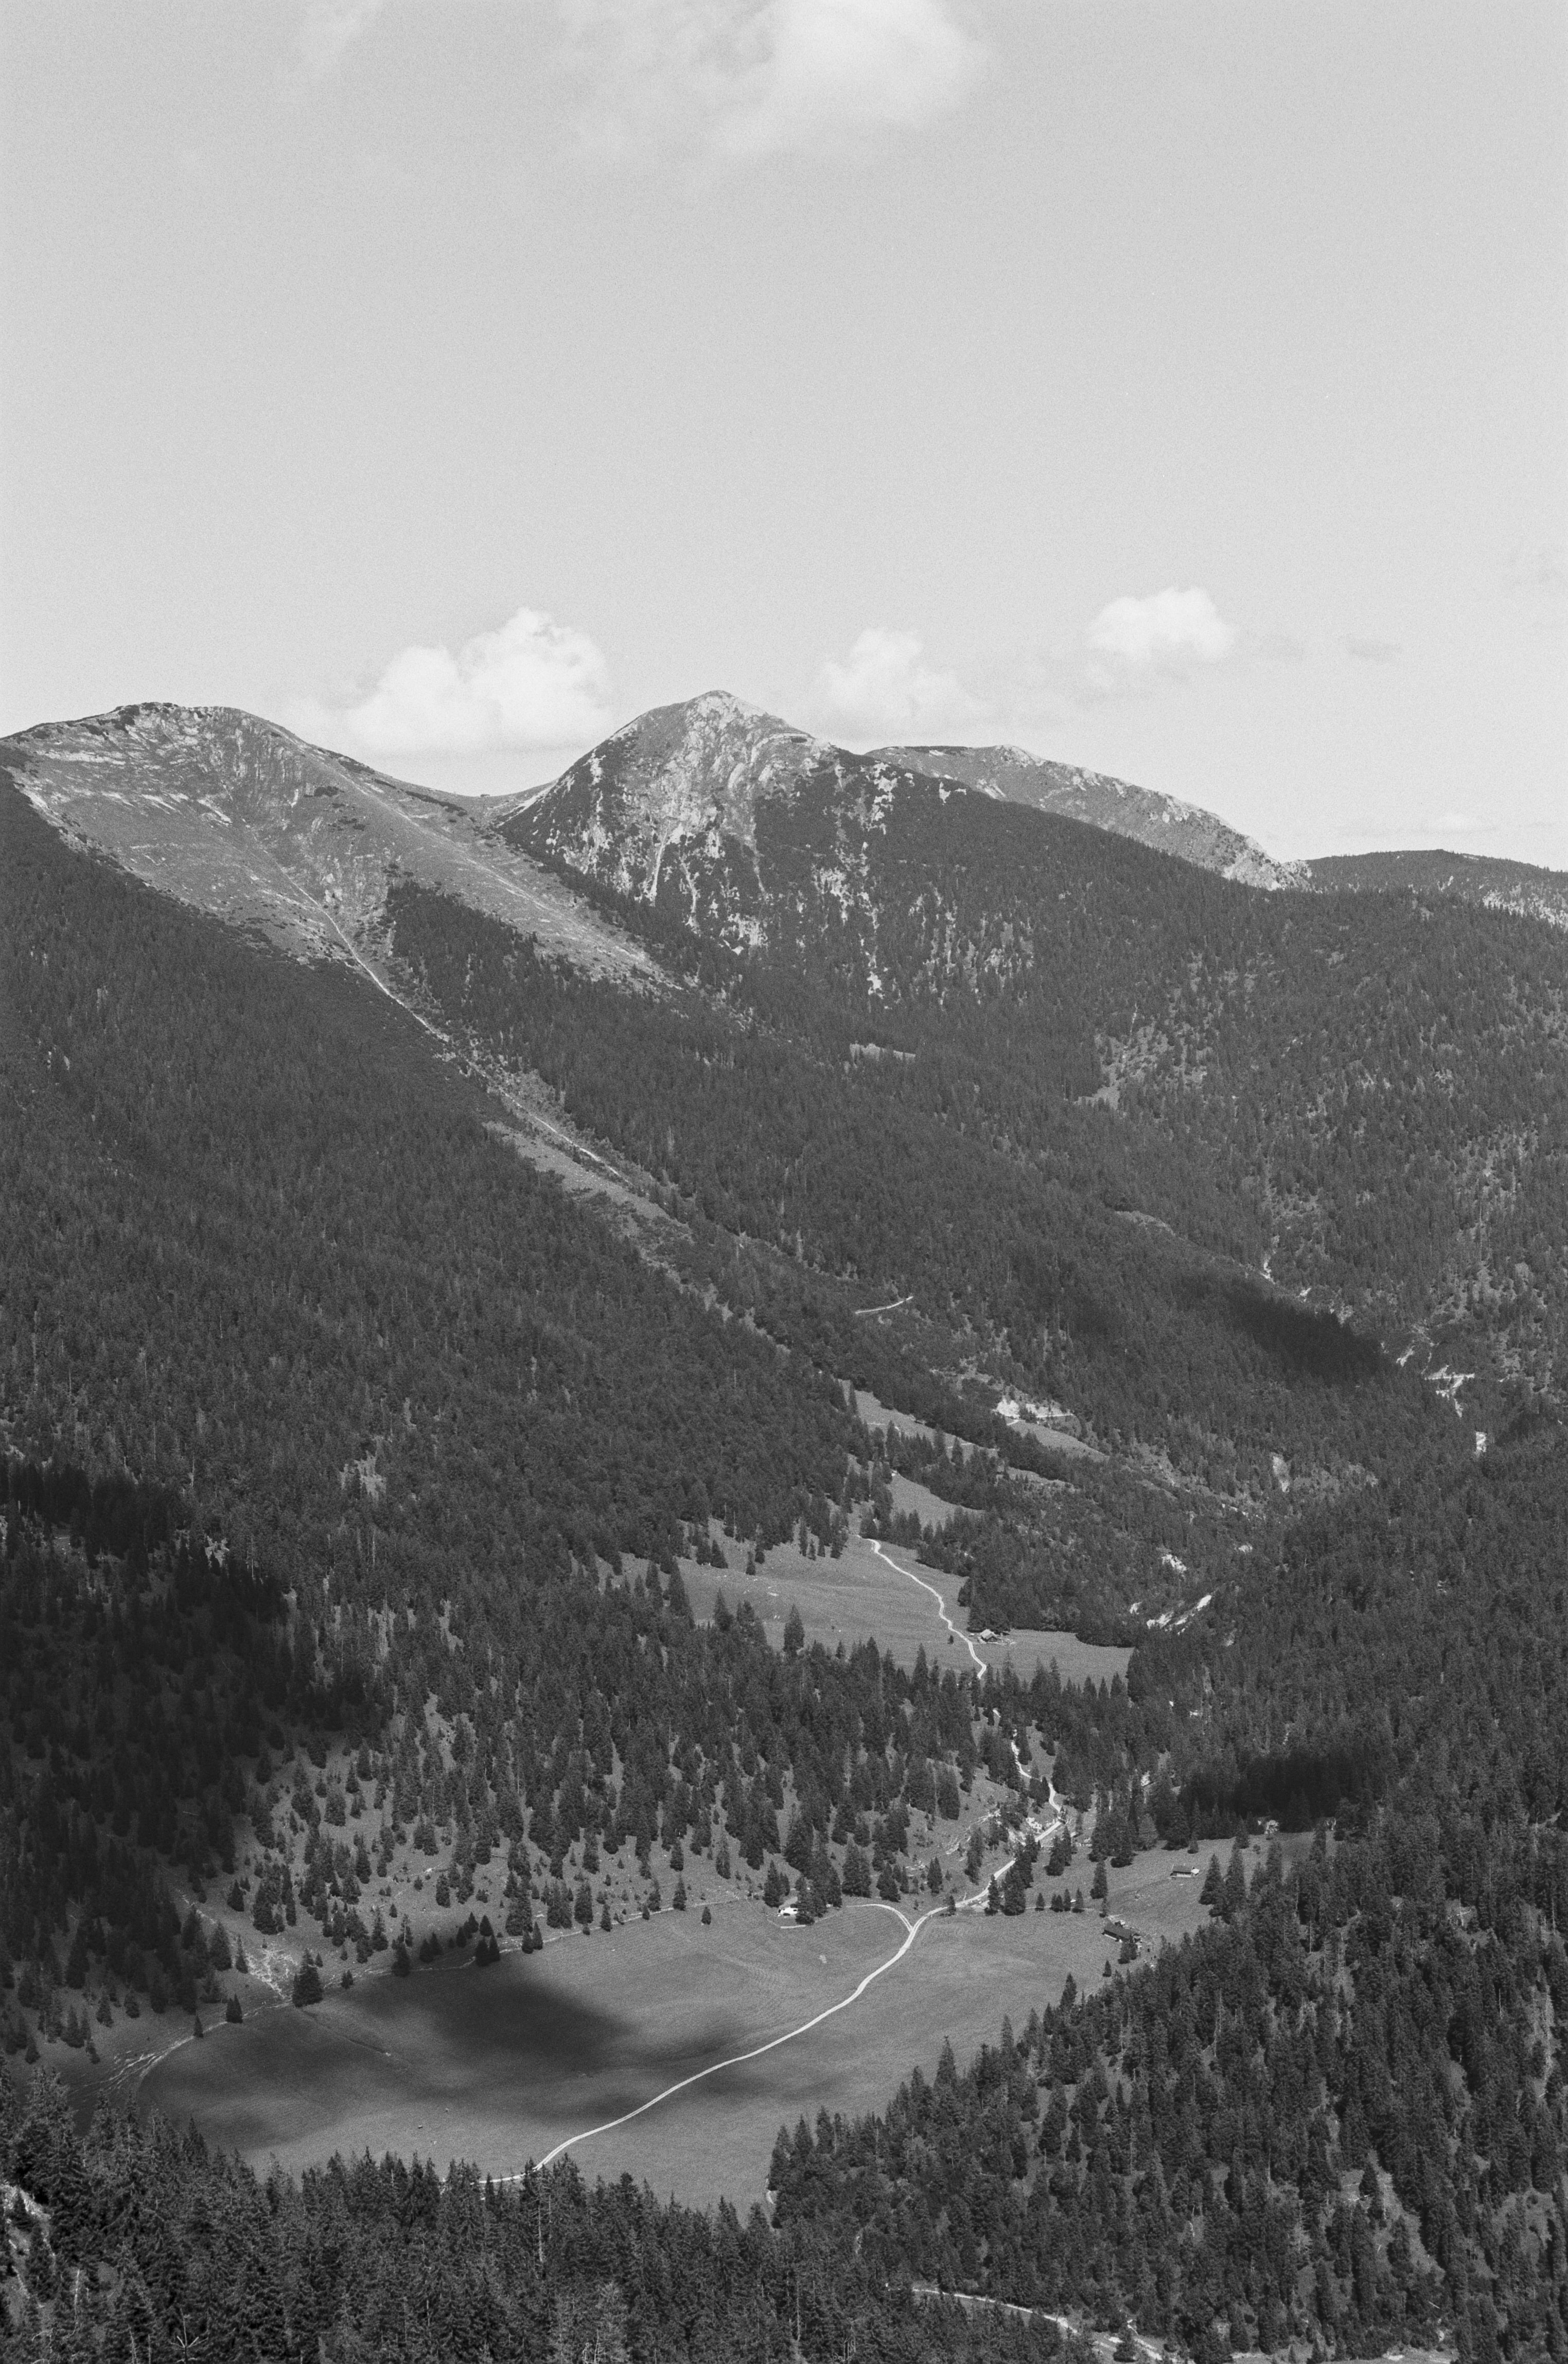 grayscale photo of mountains